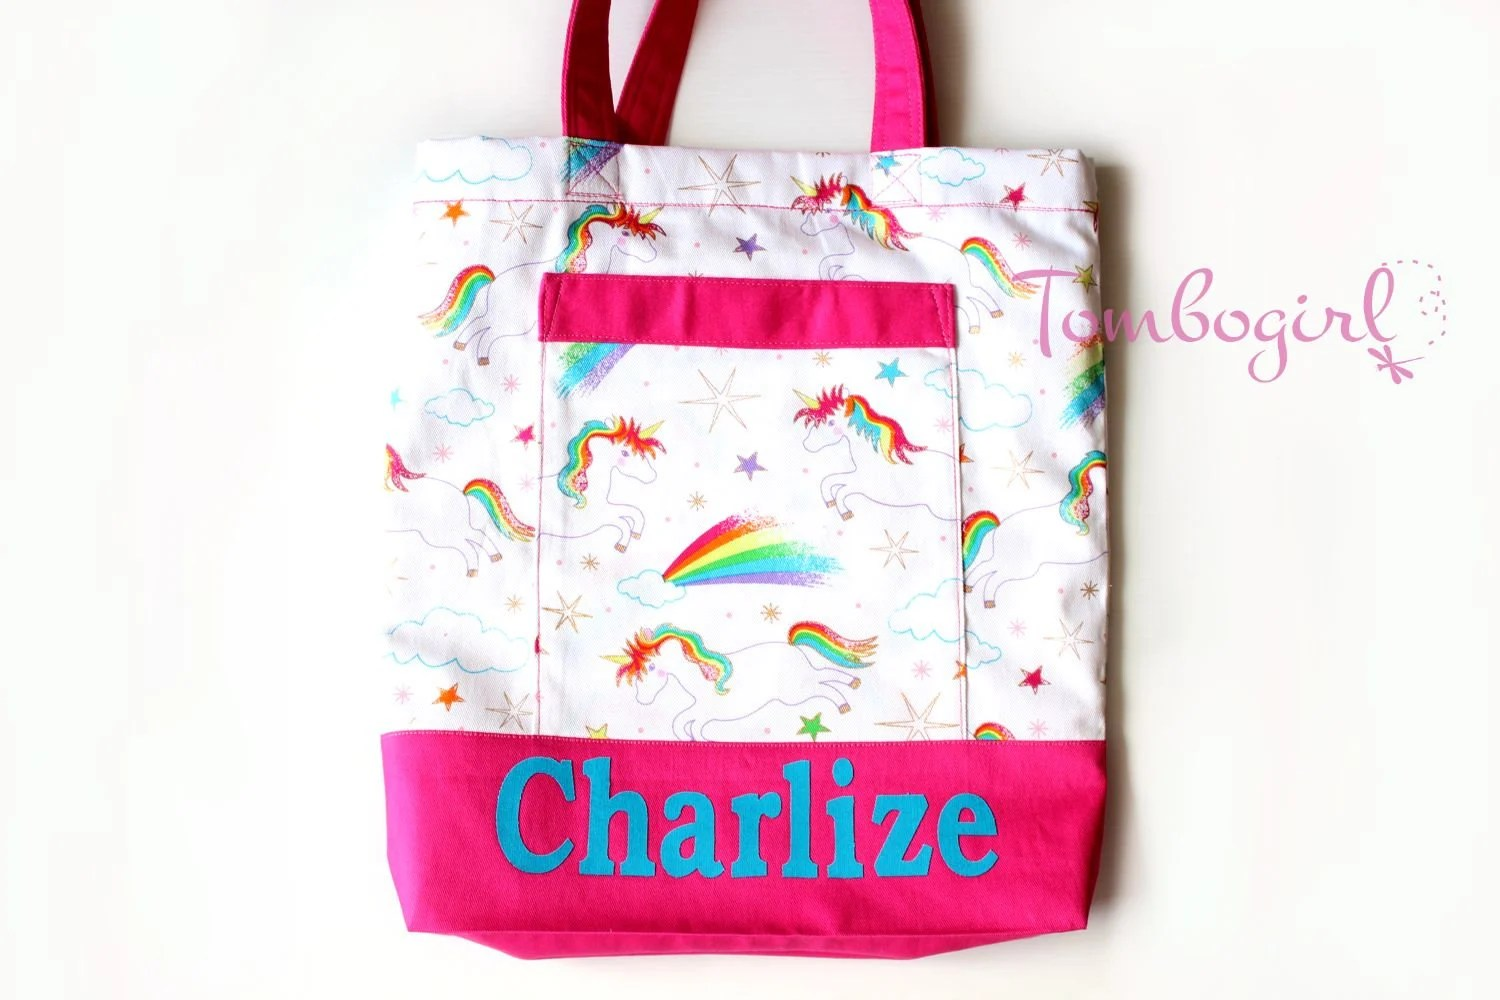 Waterproof Library Bags Australia Kids Library Bag Girls Library Lesson Tote Bag Personalised Customised Name Australian Made With Pocket Unicorn Pink